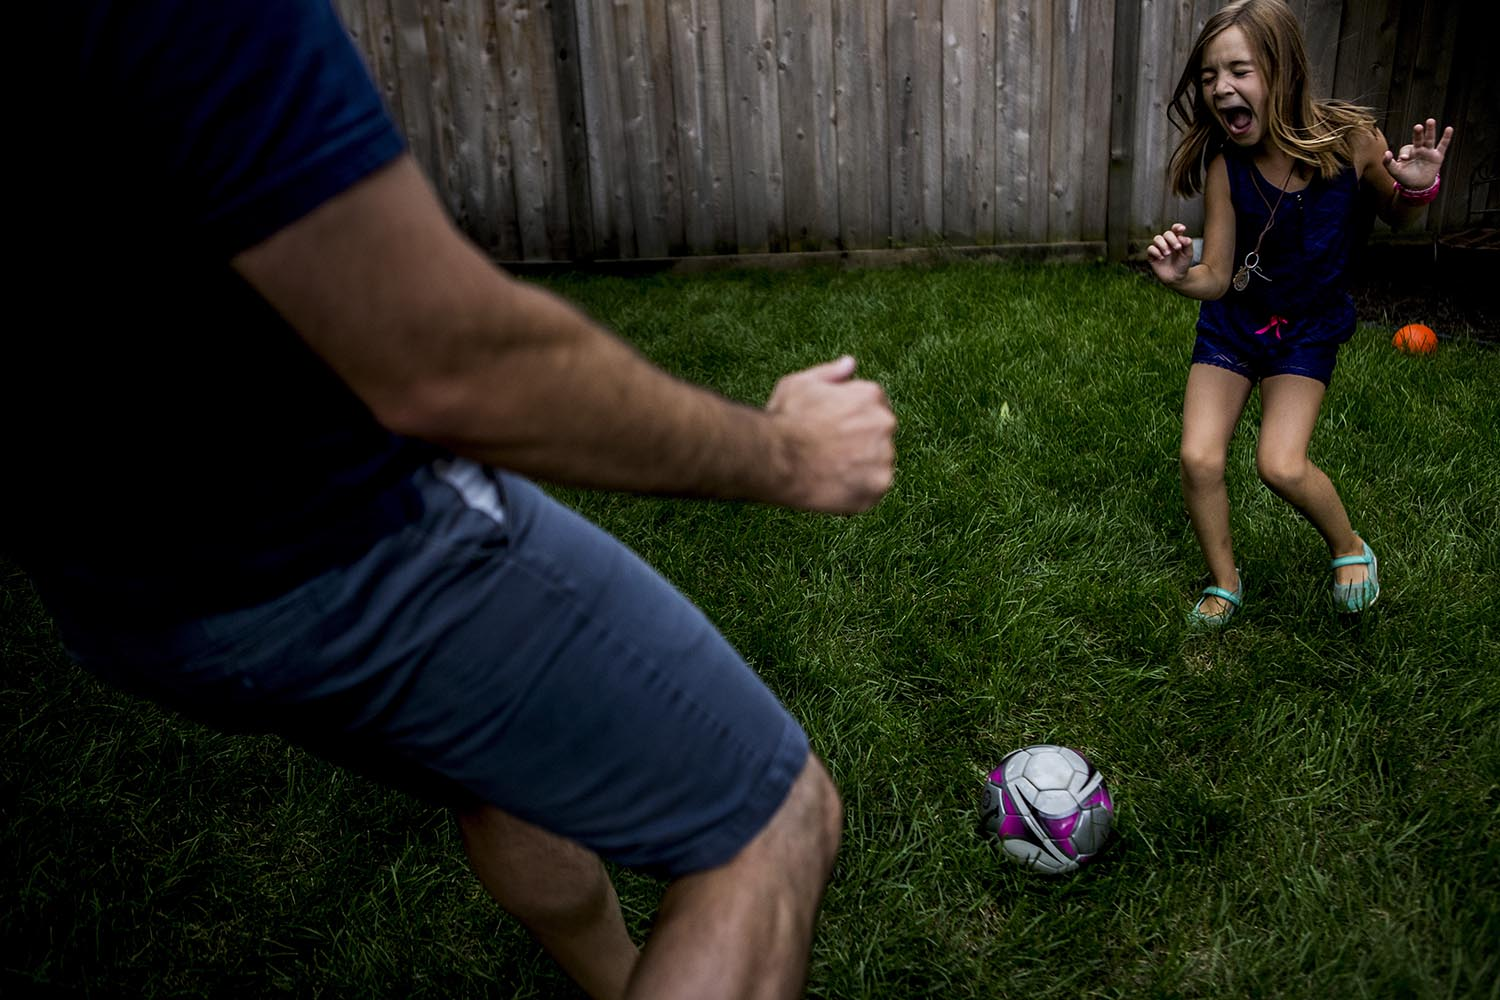 great action shot of boston daughter playing soccer with her dad